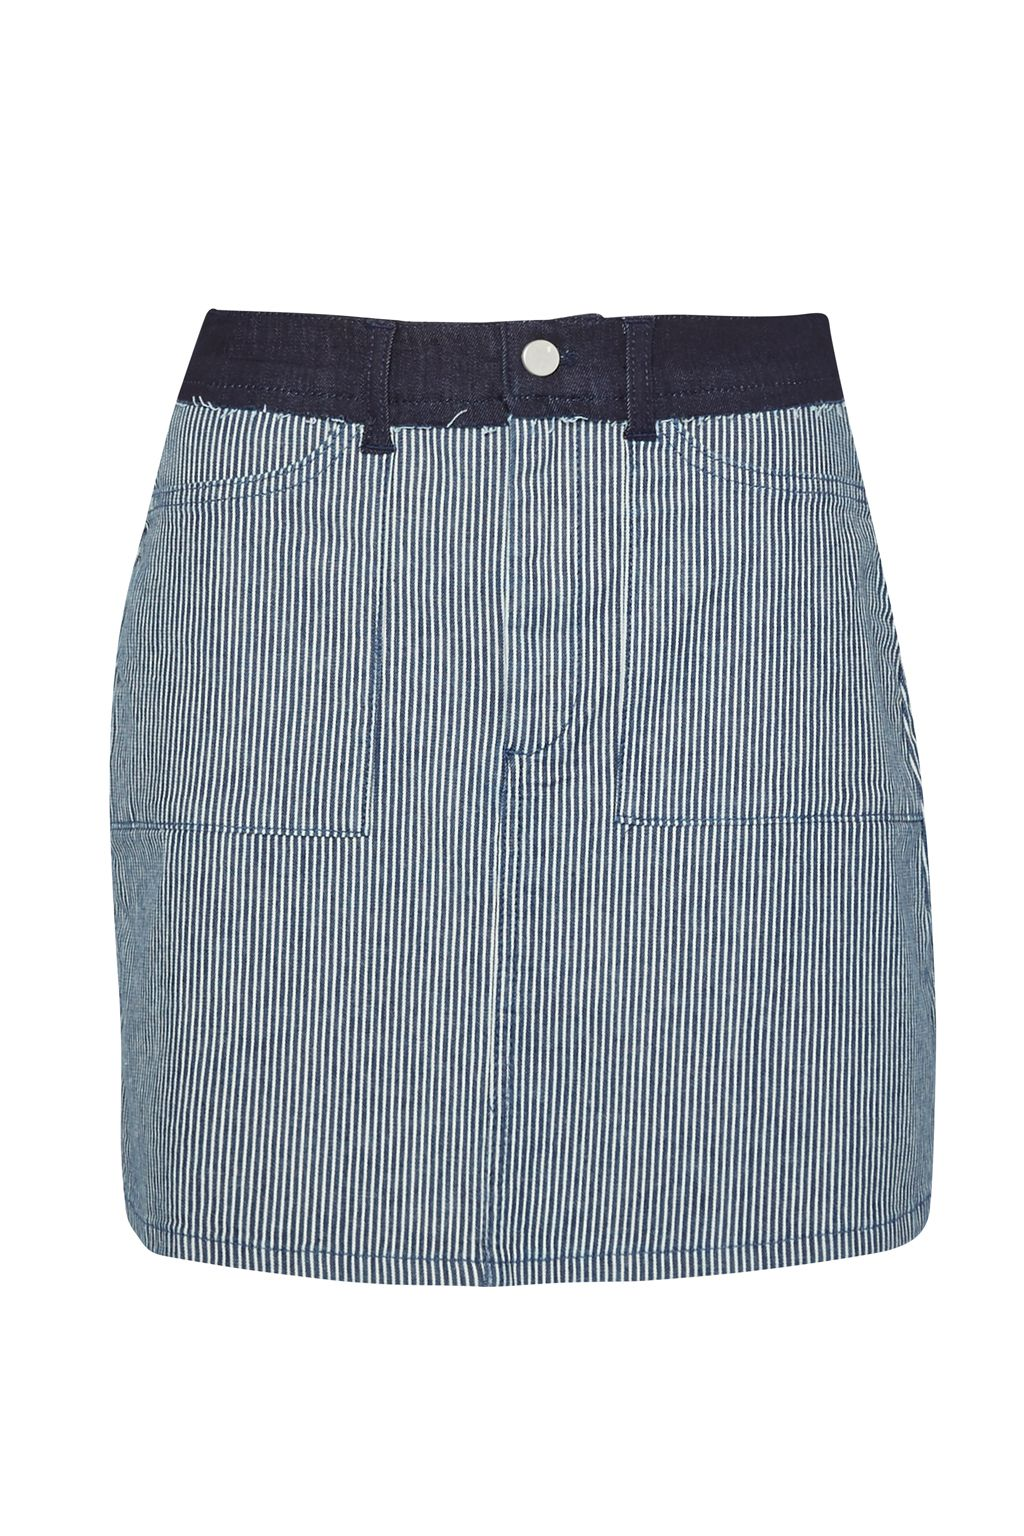 French Connection Stripe Mash Up Mini Skirt, Blue